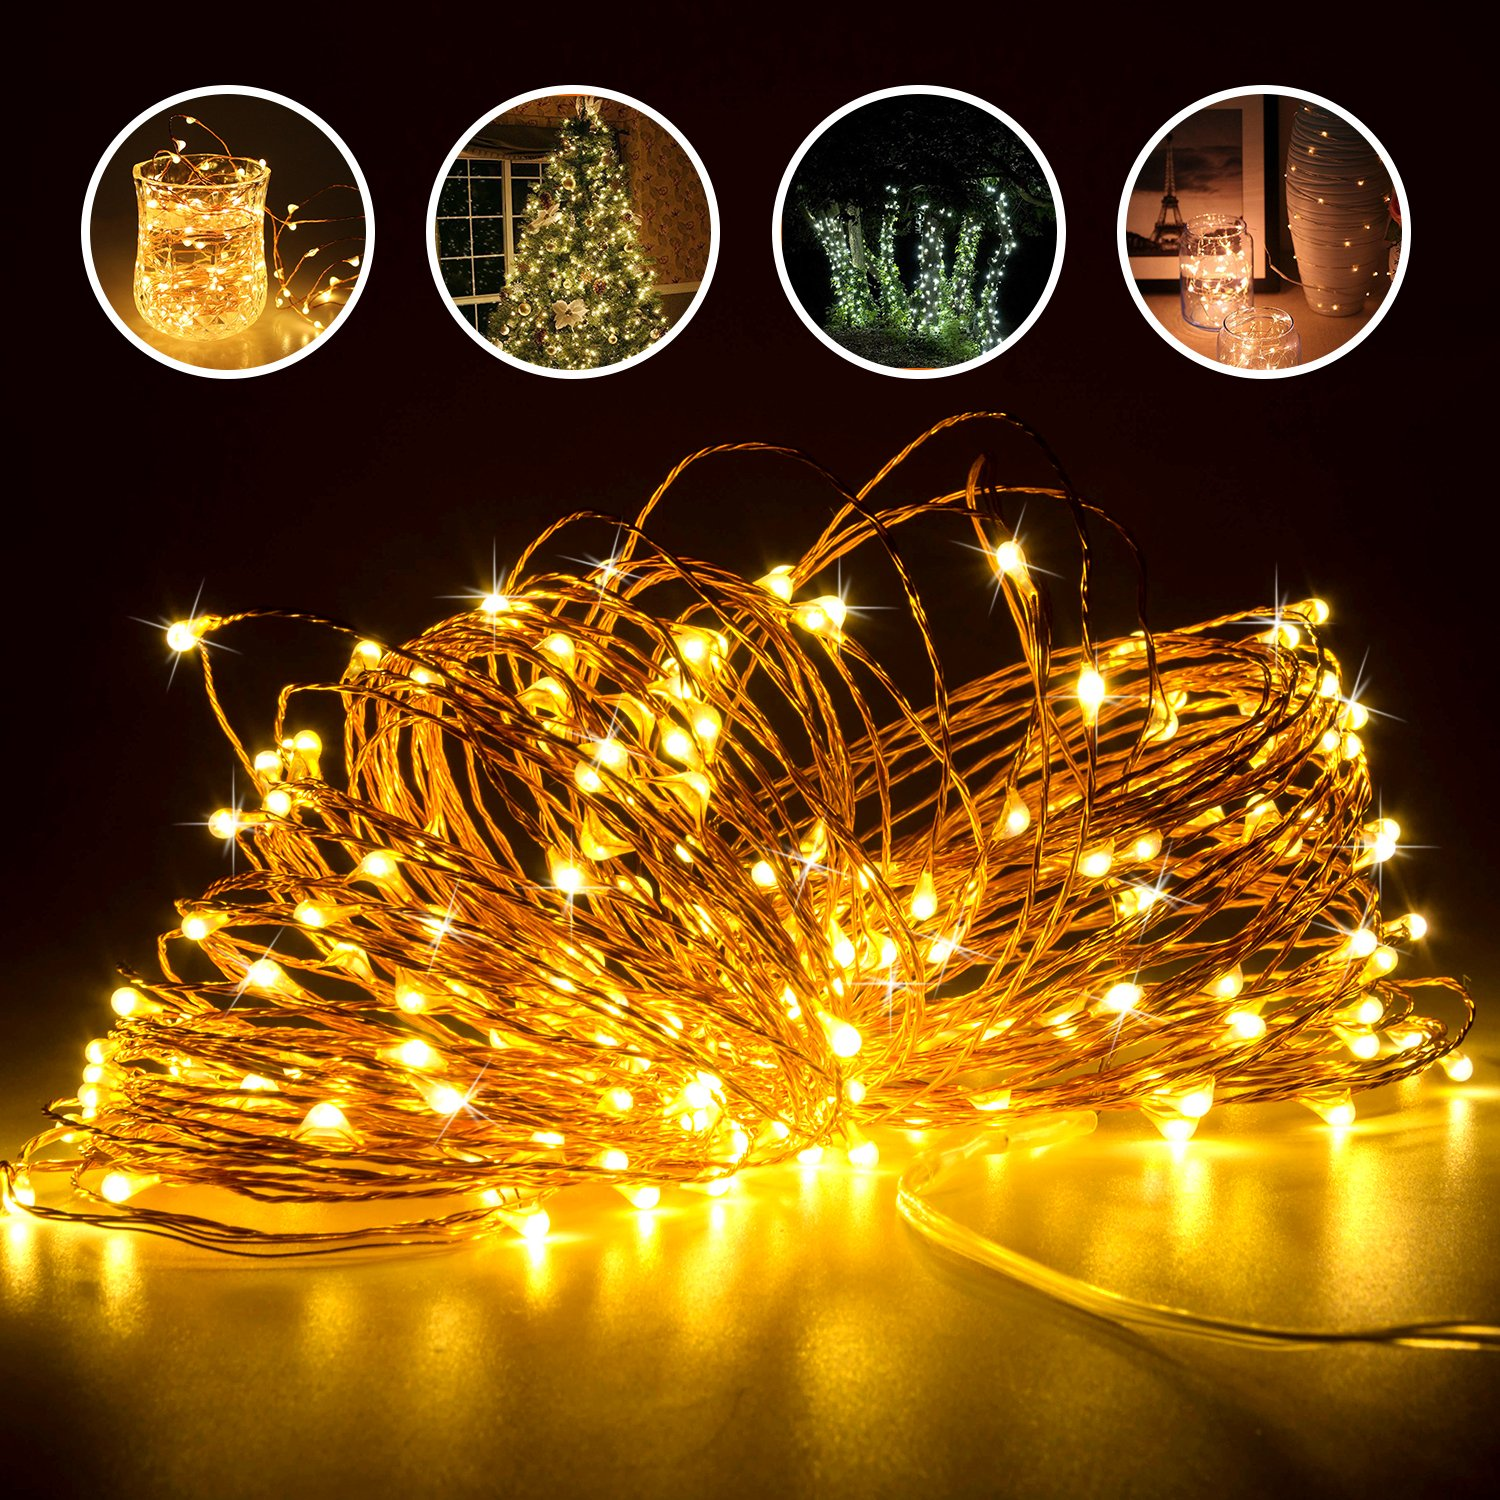 Copper Wire Lights, Elebor 2 Packs 33 Foot 100 LED Fairy Lights- Battery Operated Warm White String Lights for Decoration, Indoor, Wedding, Party, Garden, Festival LE010-Stringlight